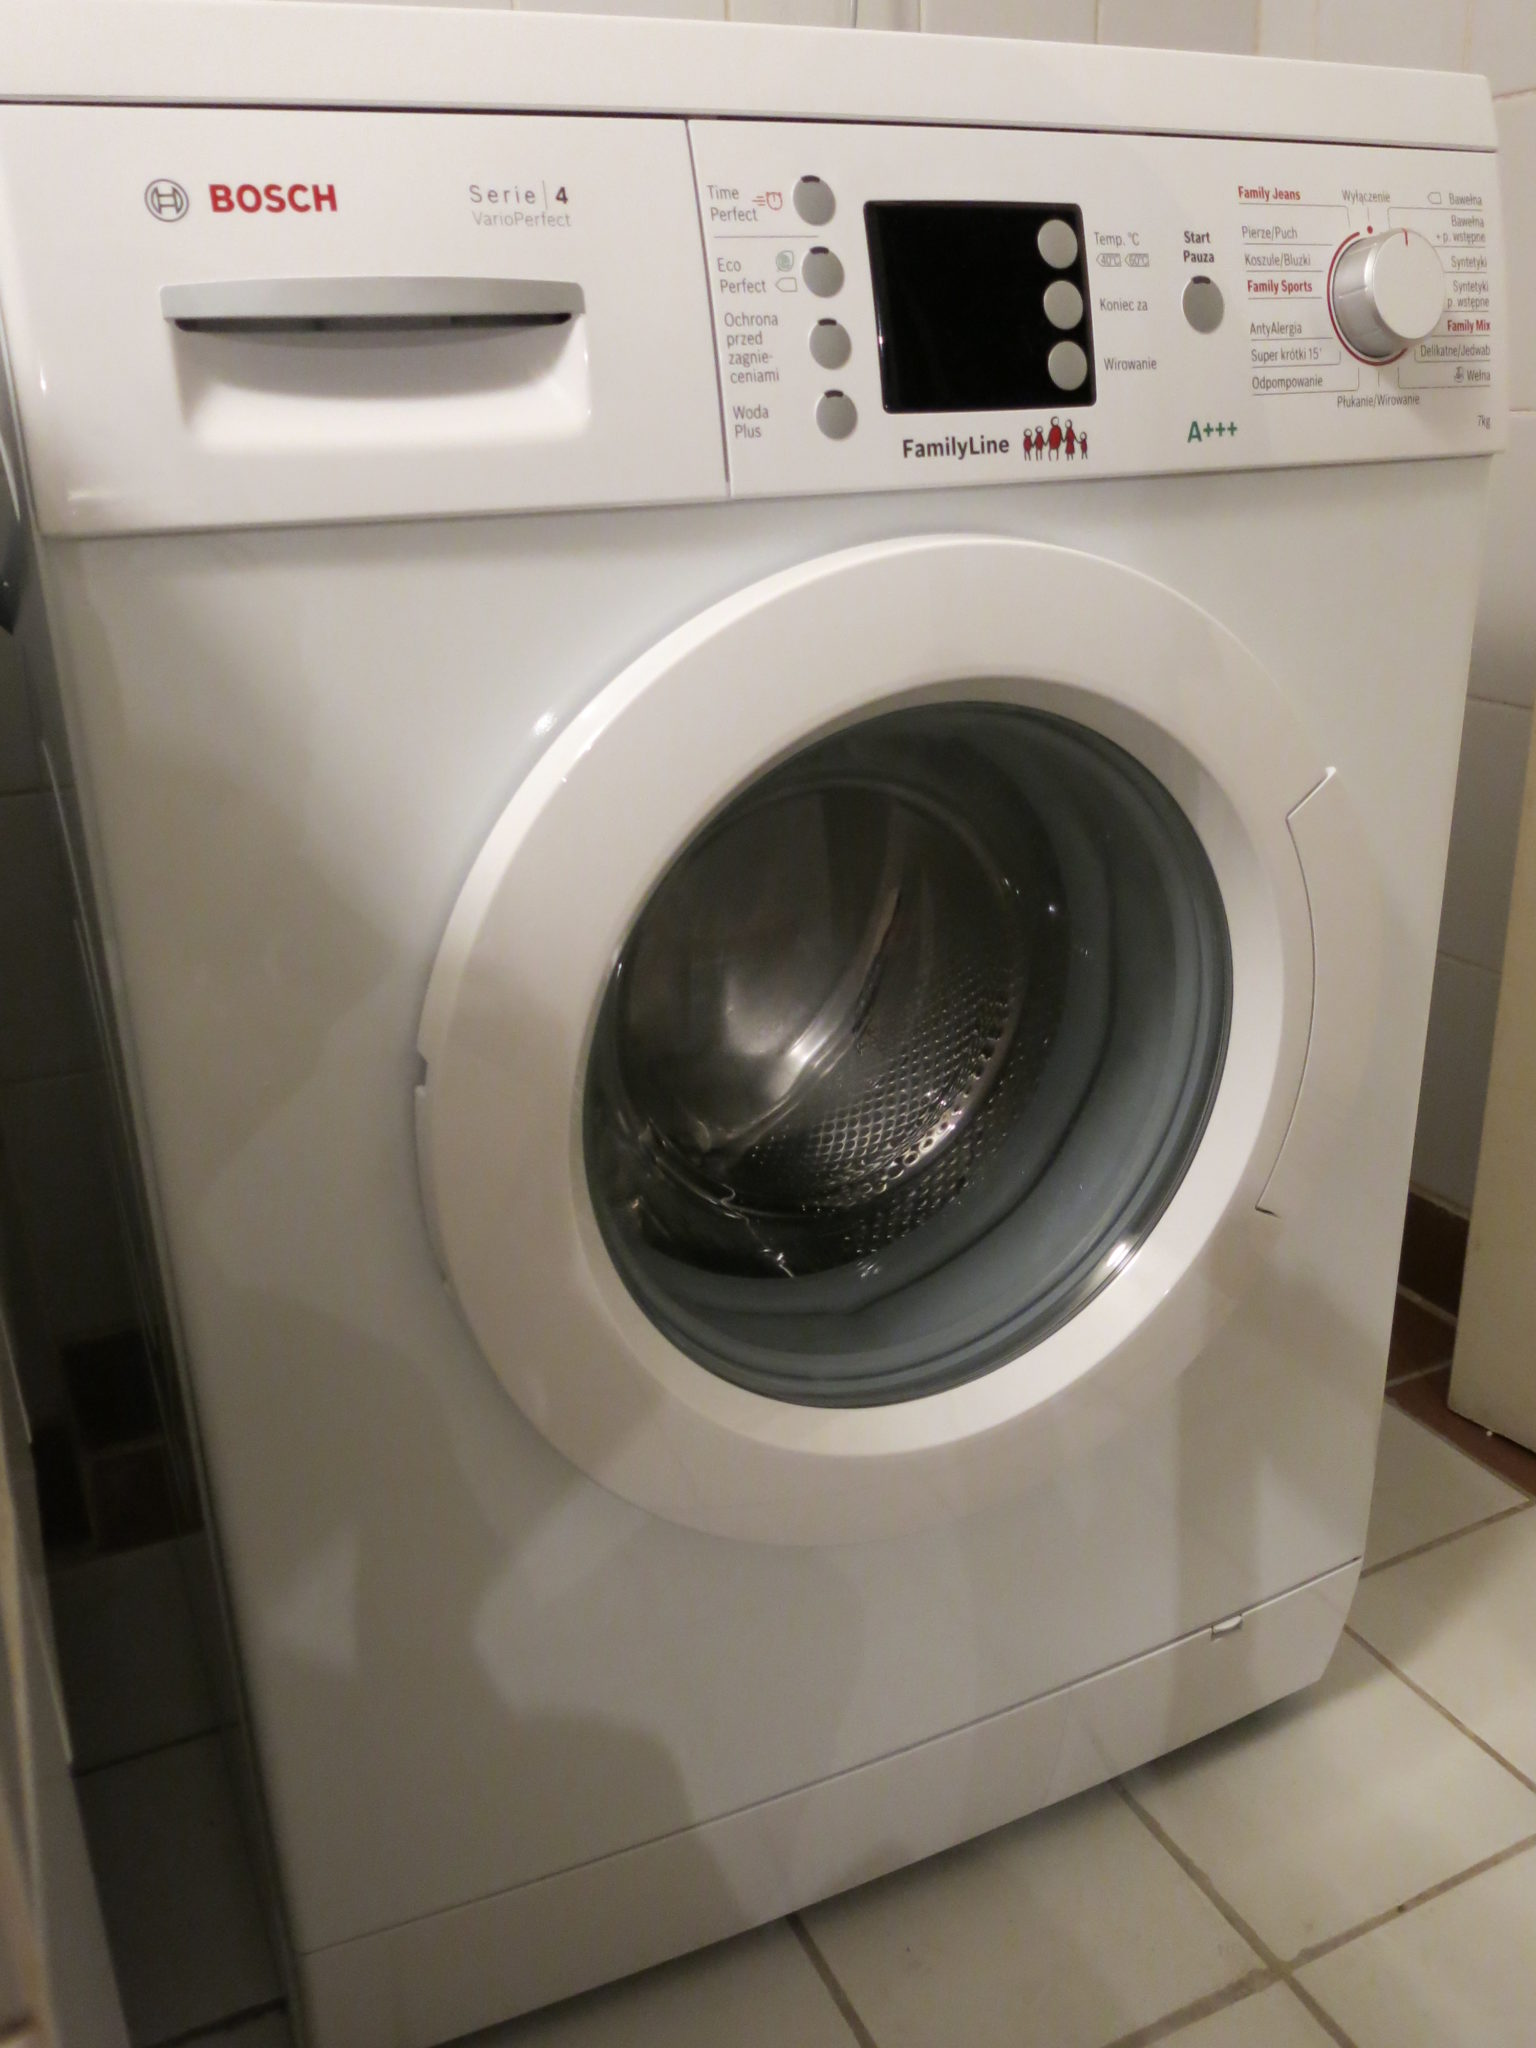 Siemens Vario Perfekt preloved free classified ads buy and sell second hand waschmaschine